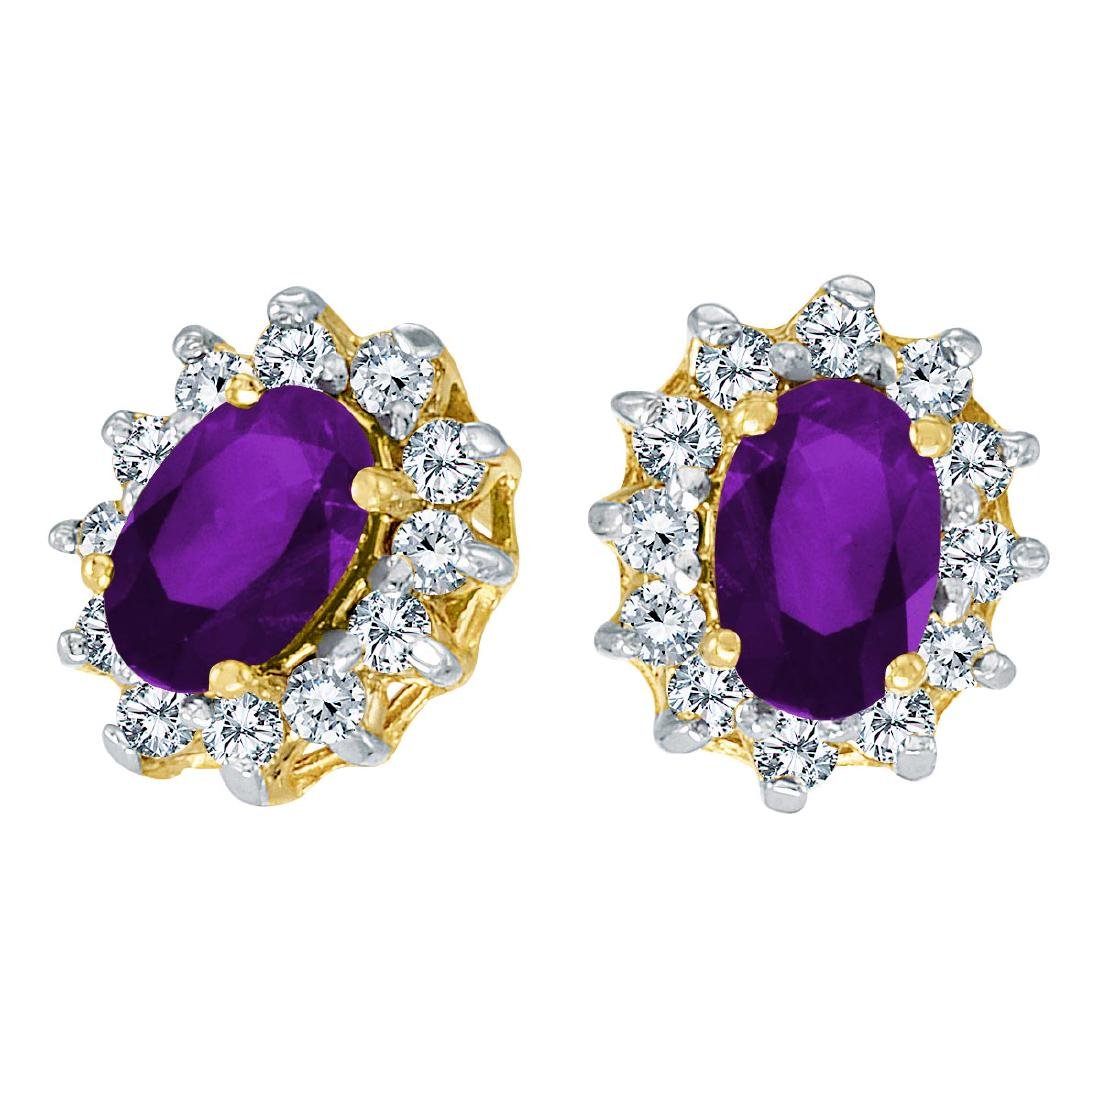 Certified 14k Yellow Gold Oval Amethyst and .25 total C